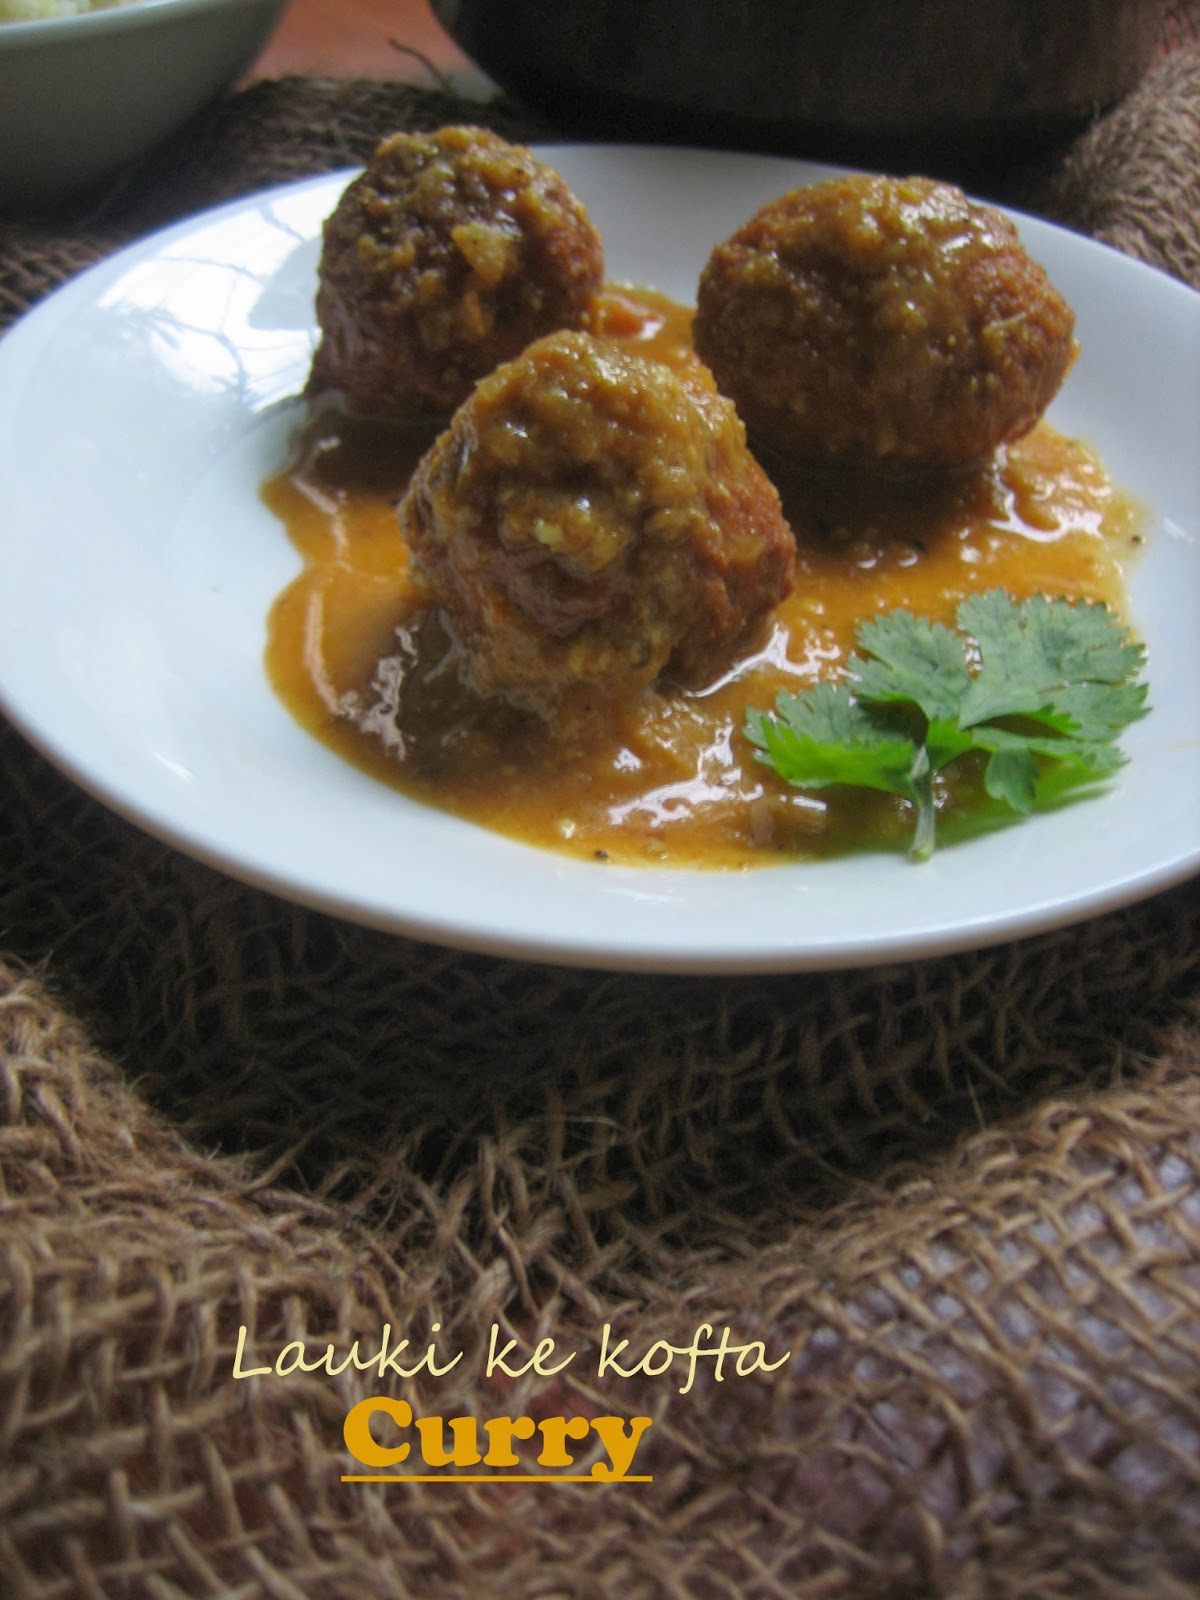 lauki/ bottle gourd kofta curry 1